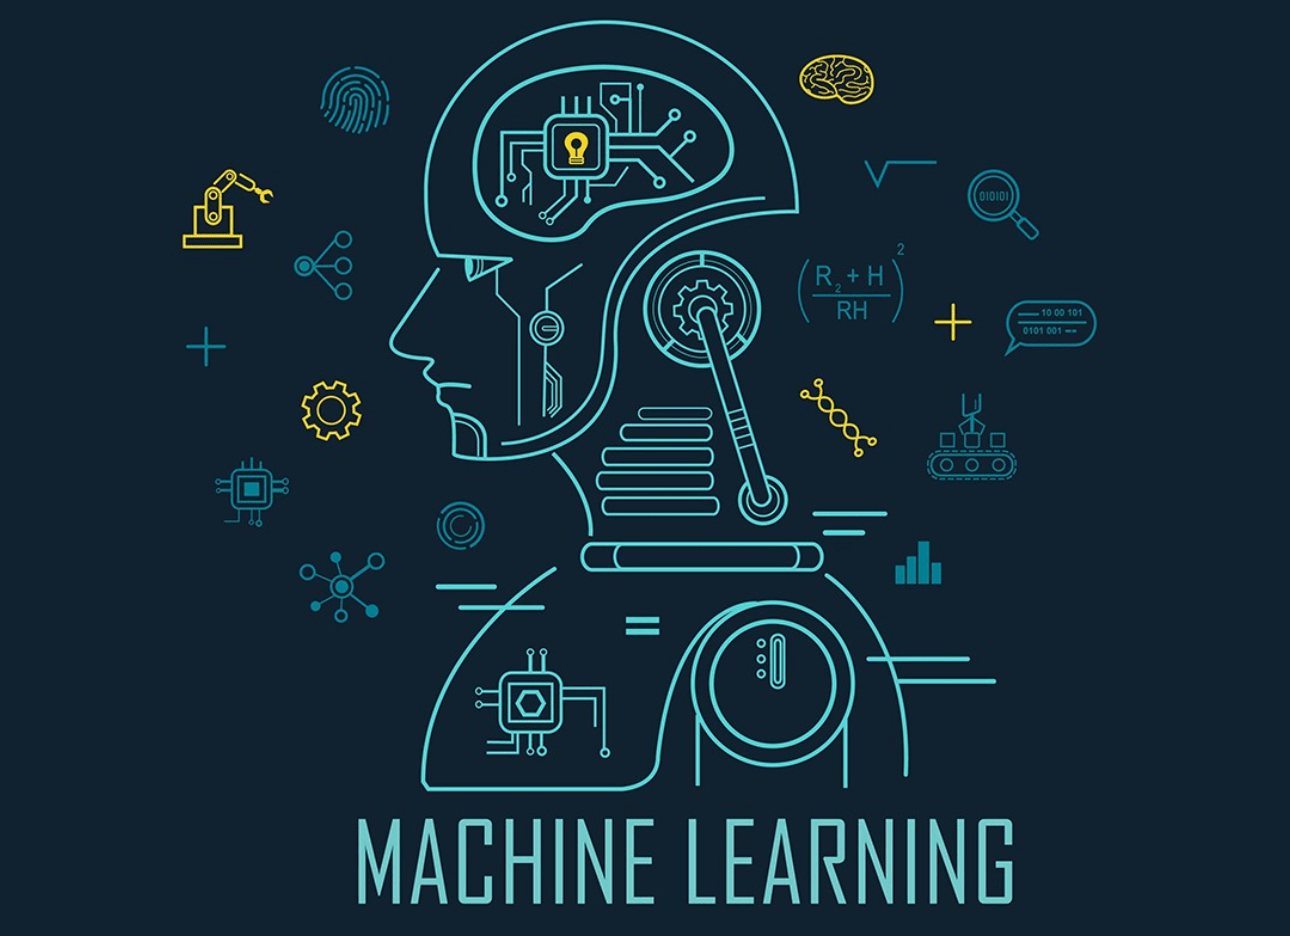 Machine Learning and AI [ Turning Test ]